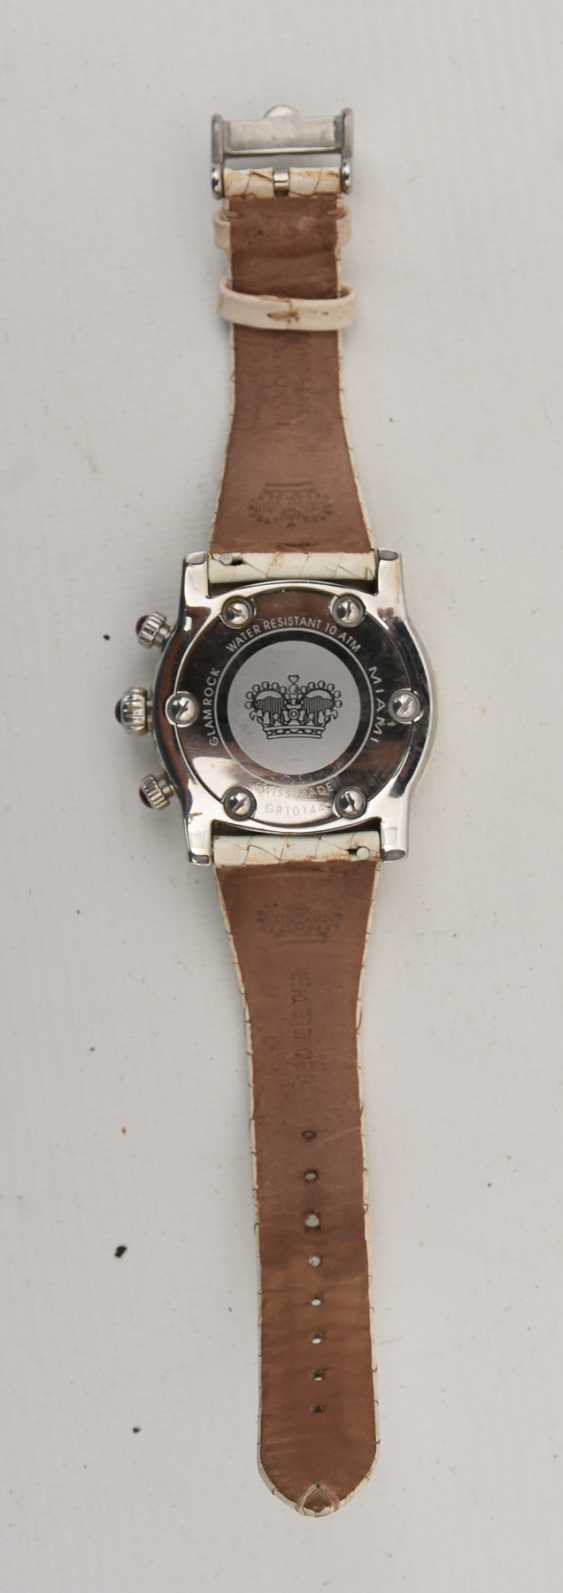 GLAM ROCK women's WATCH WHITE stainless steel/leather, 2000 - photo 5